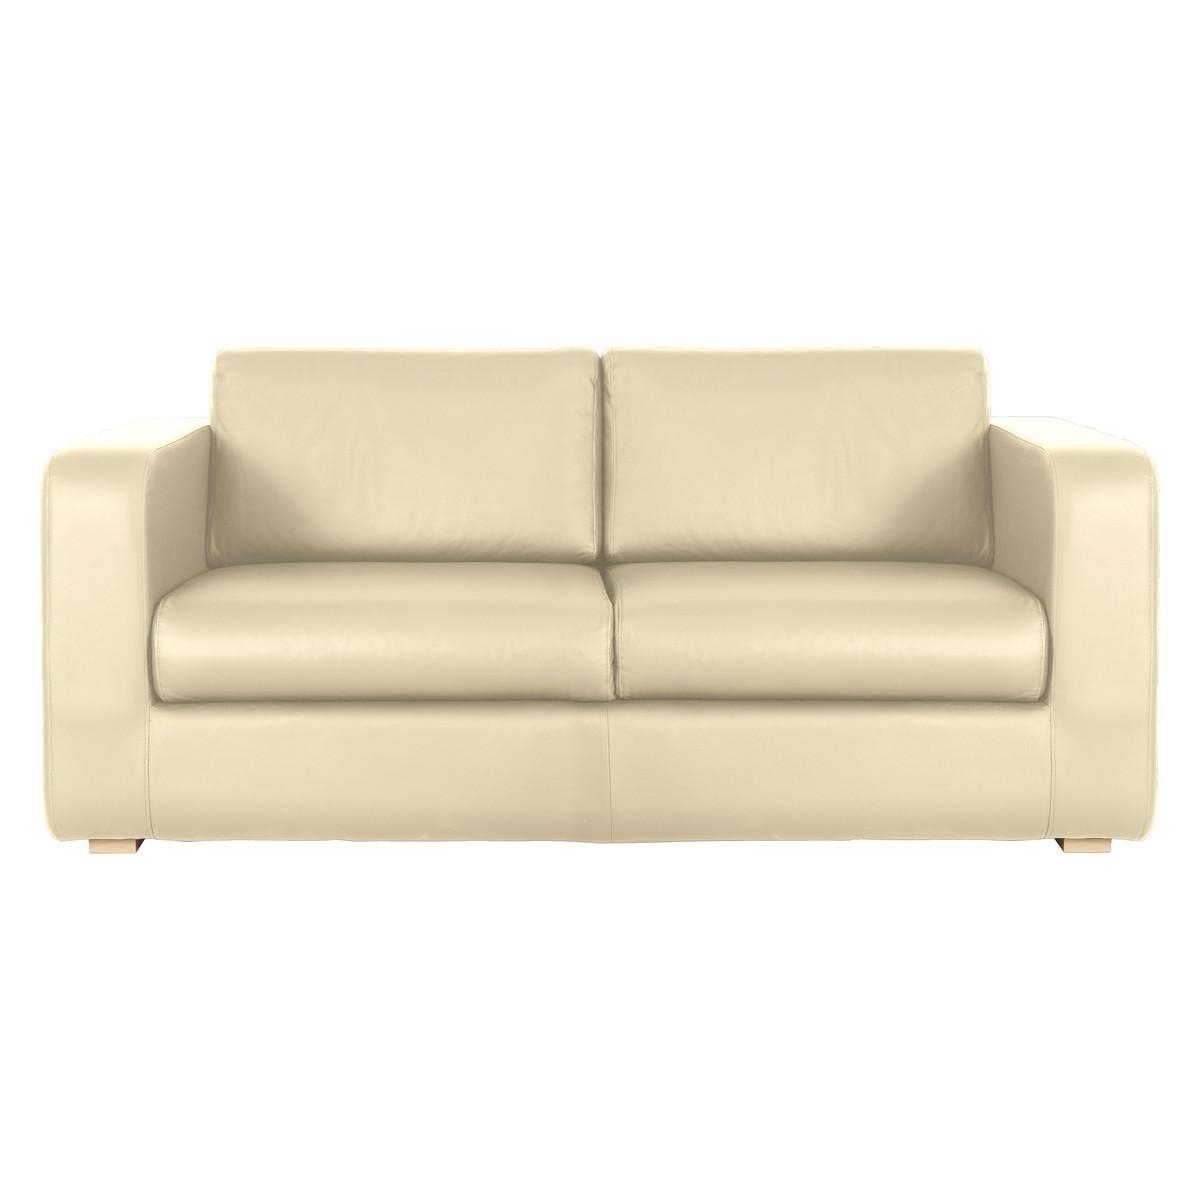 Porto Cream Leather 3 Seater Sofa | Buy Now At Habitat Uk Intended For Three Seater Sofas (View 20 of 20)